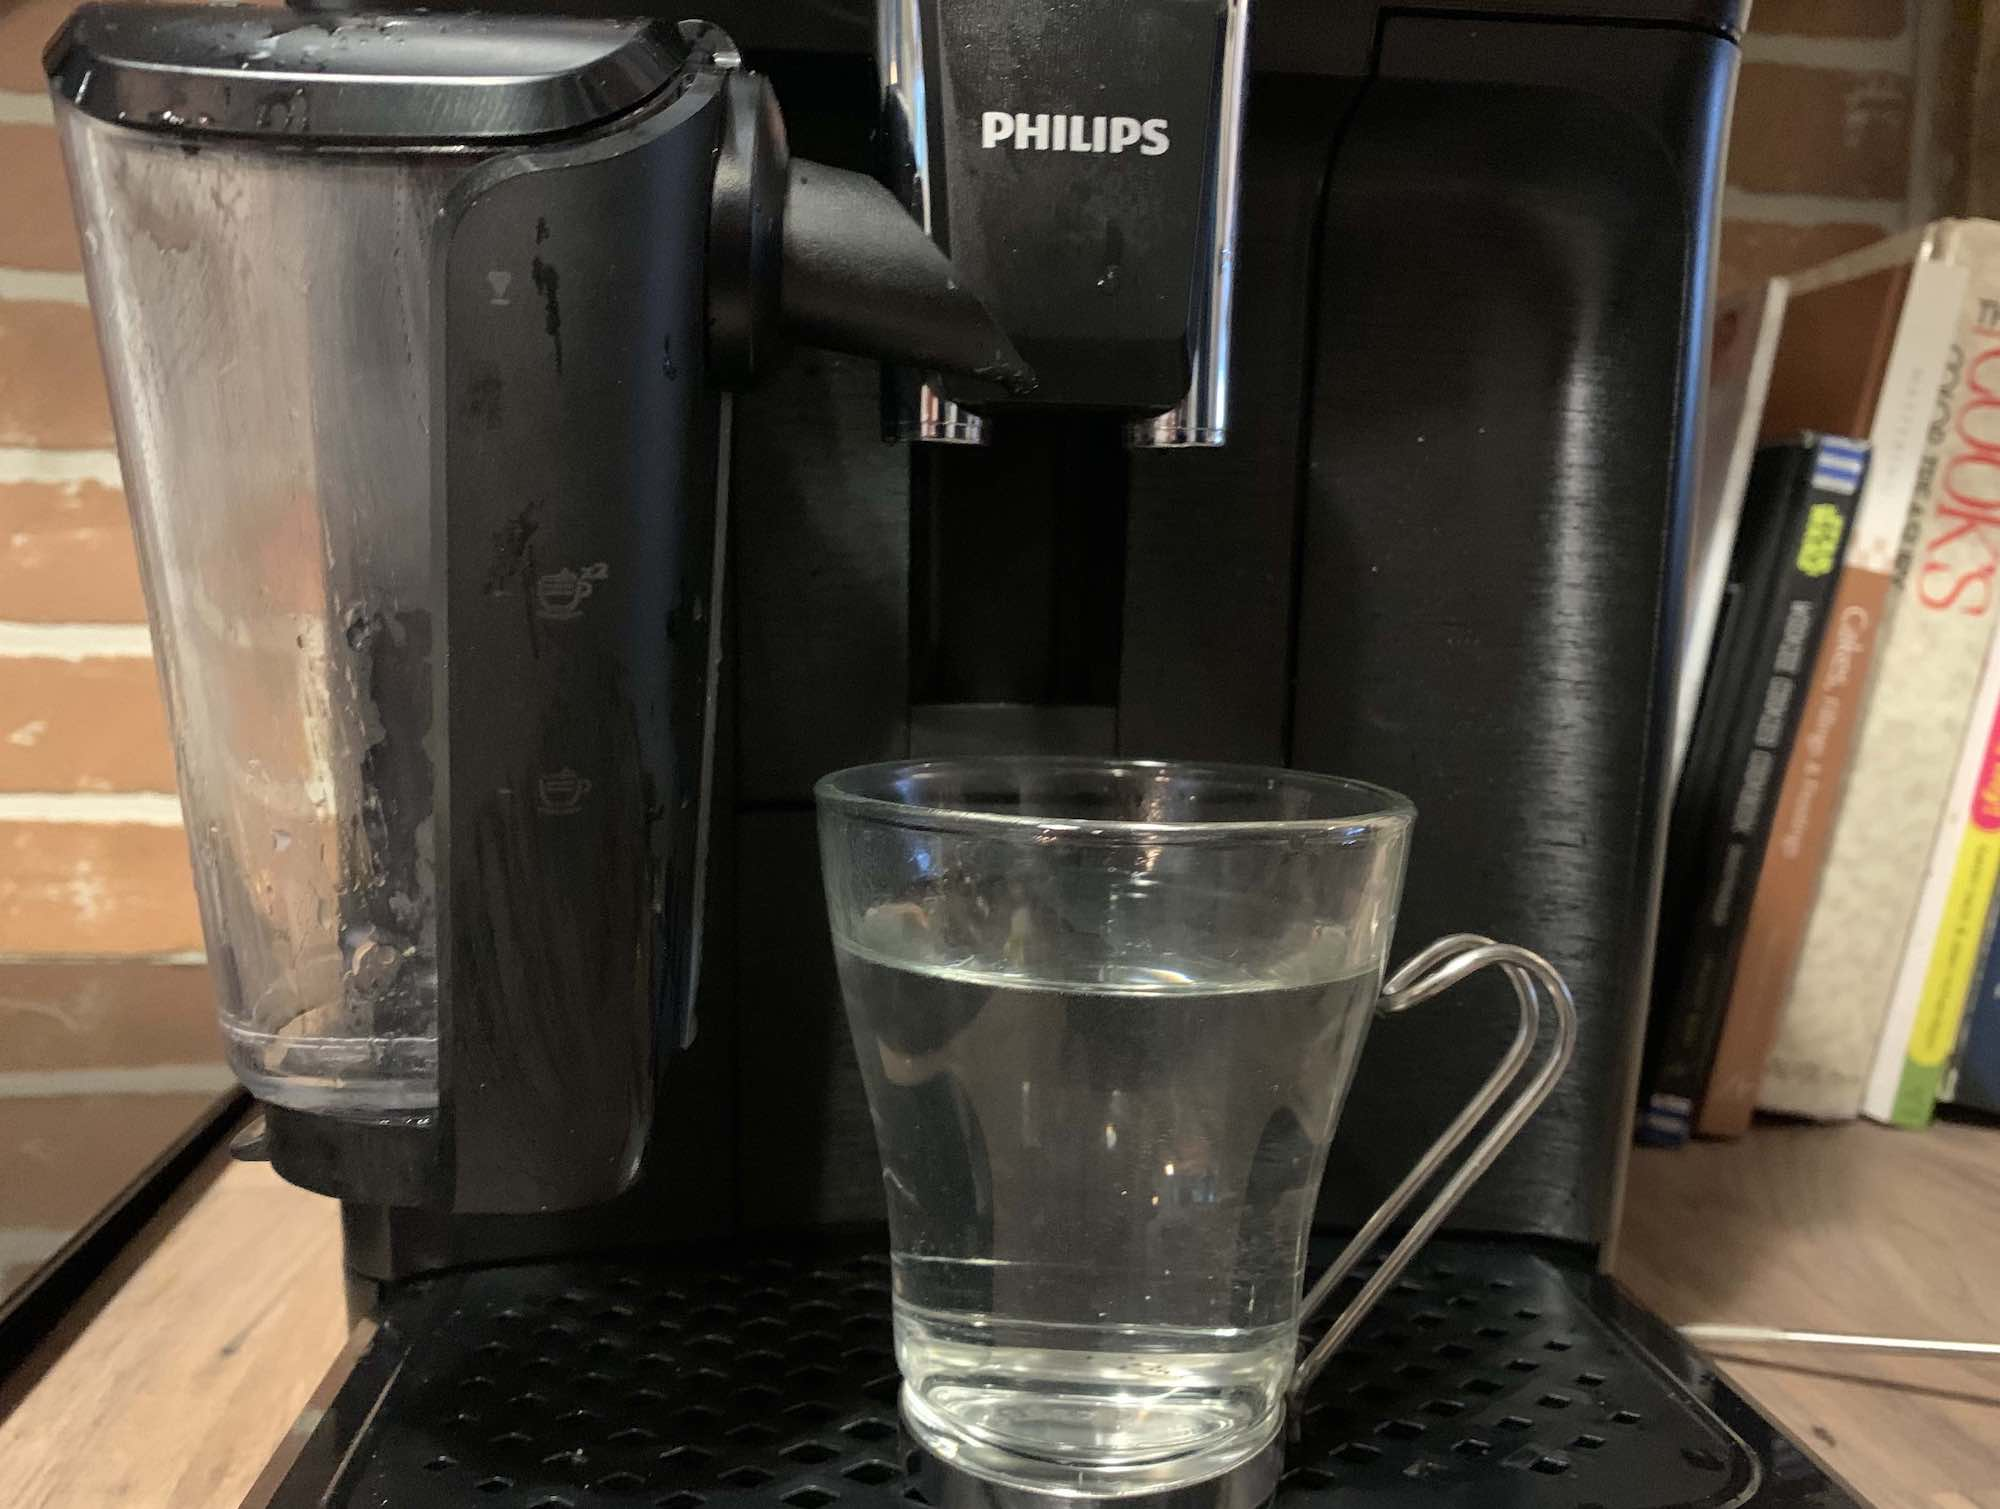 Hot Water Philips Automatic Espresso Machine